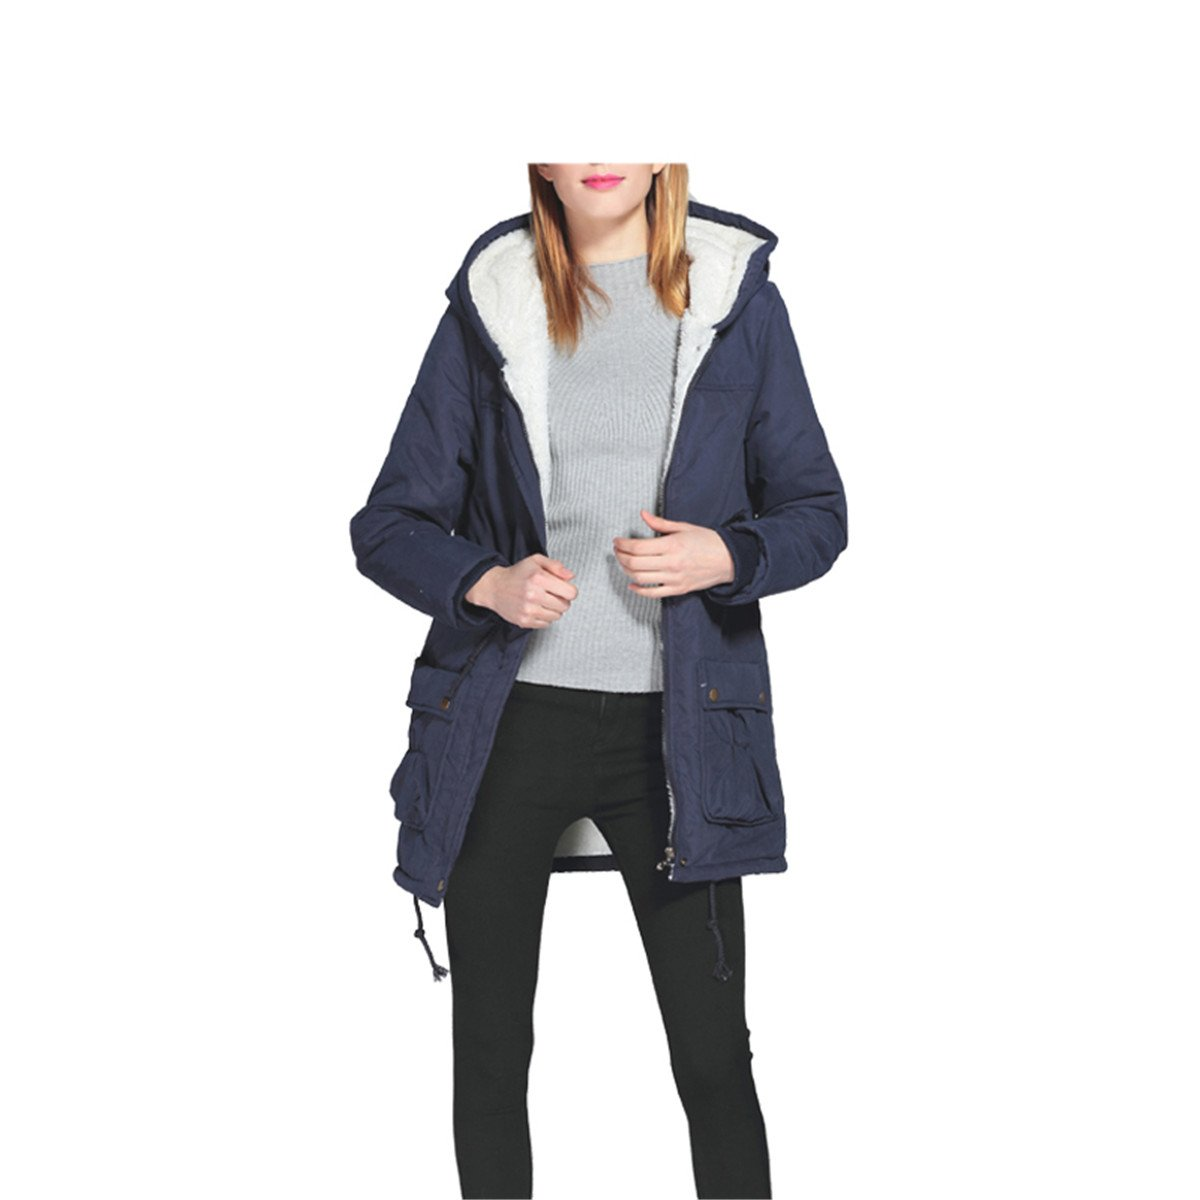 Amazon.com: Anzhuangh New Winter Padded Coats Women Cotton Wadded Jacket Medium-Long Parka Thick Warm Plus Size Hooded Quilt Snow Outwear Abrigos Khaki M: ...